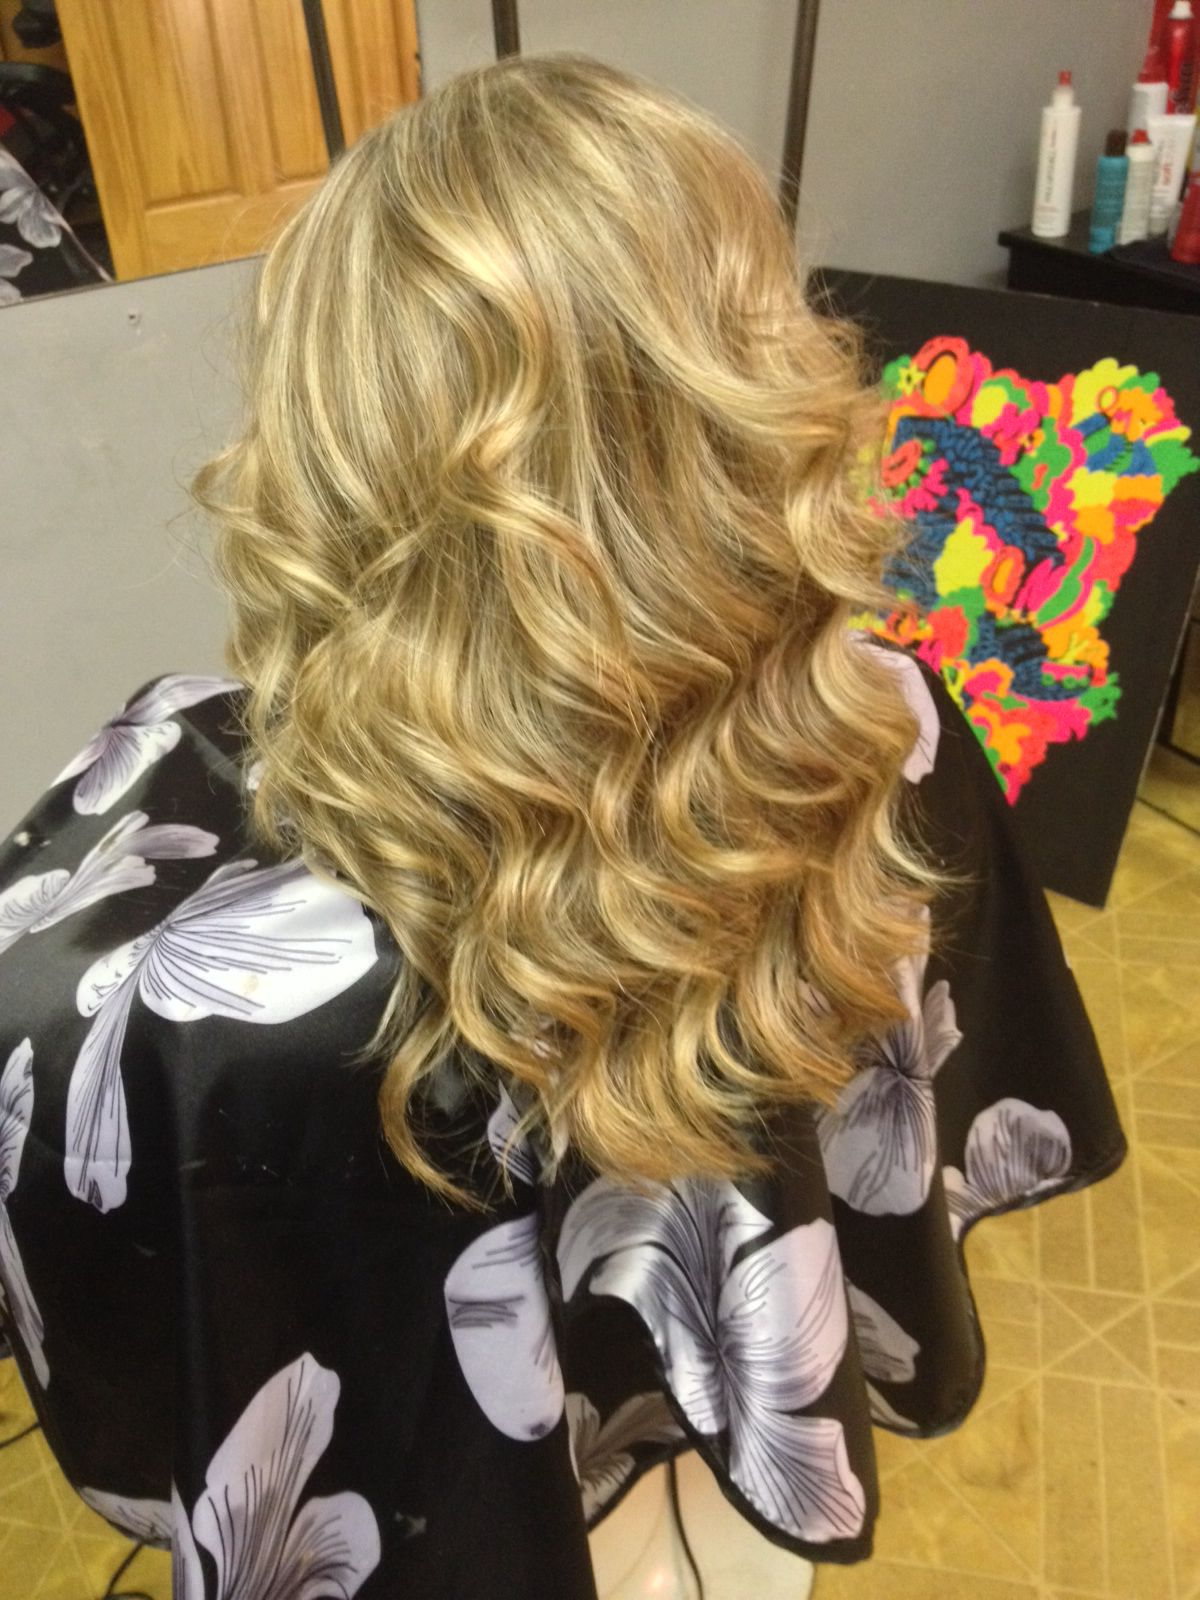 Hilites and lowlites by whitney bell at kj nutt u friends hair